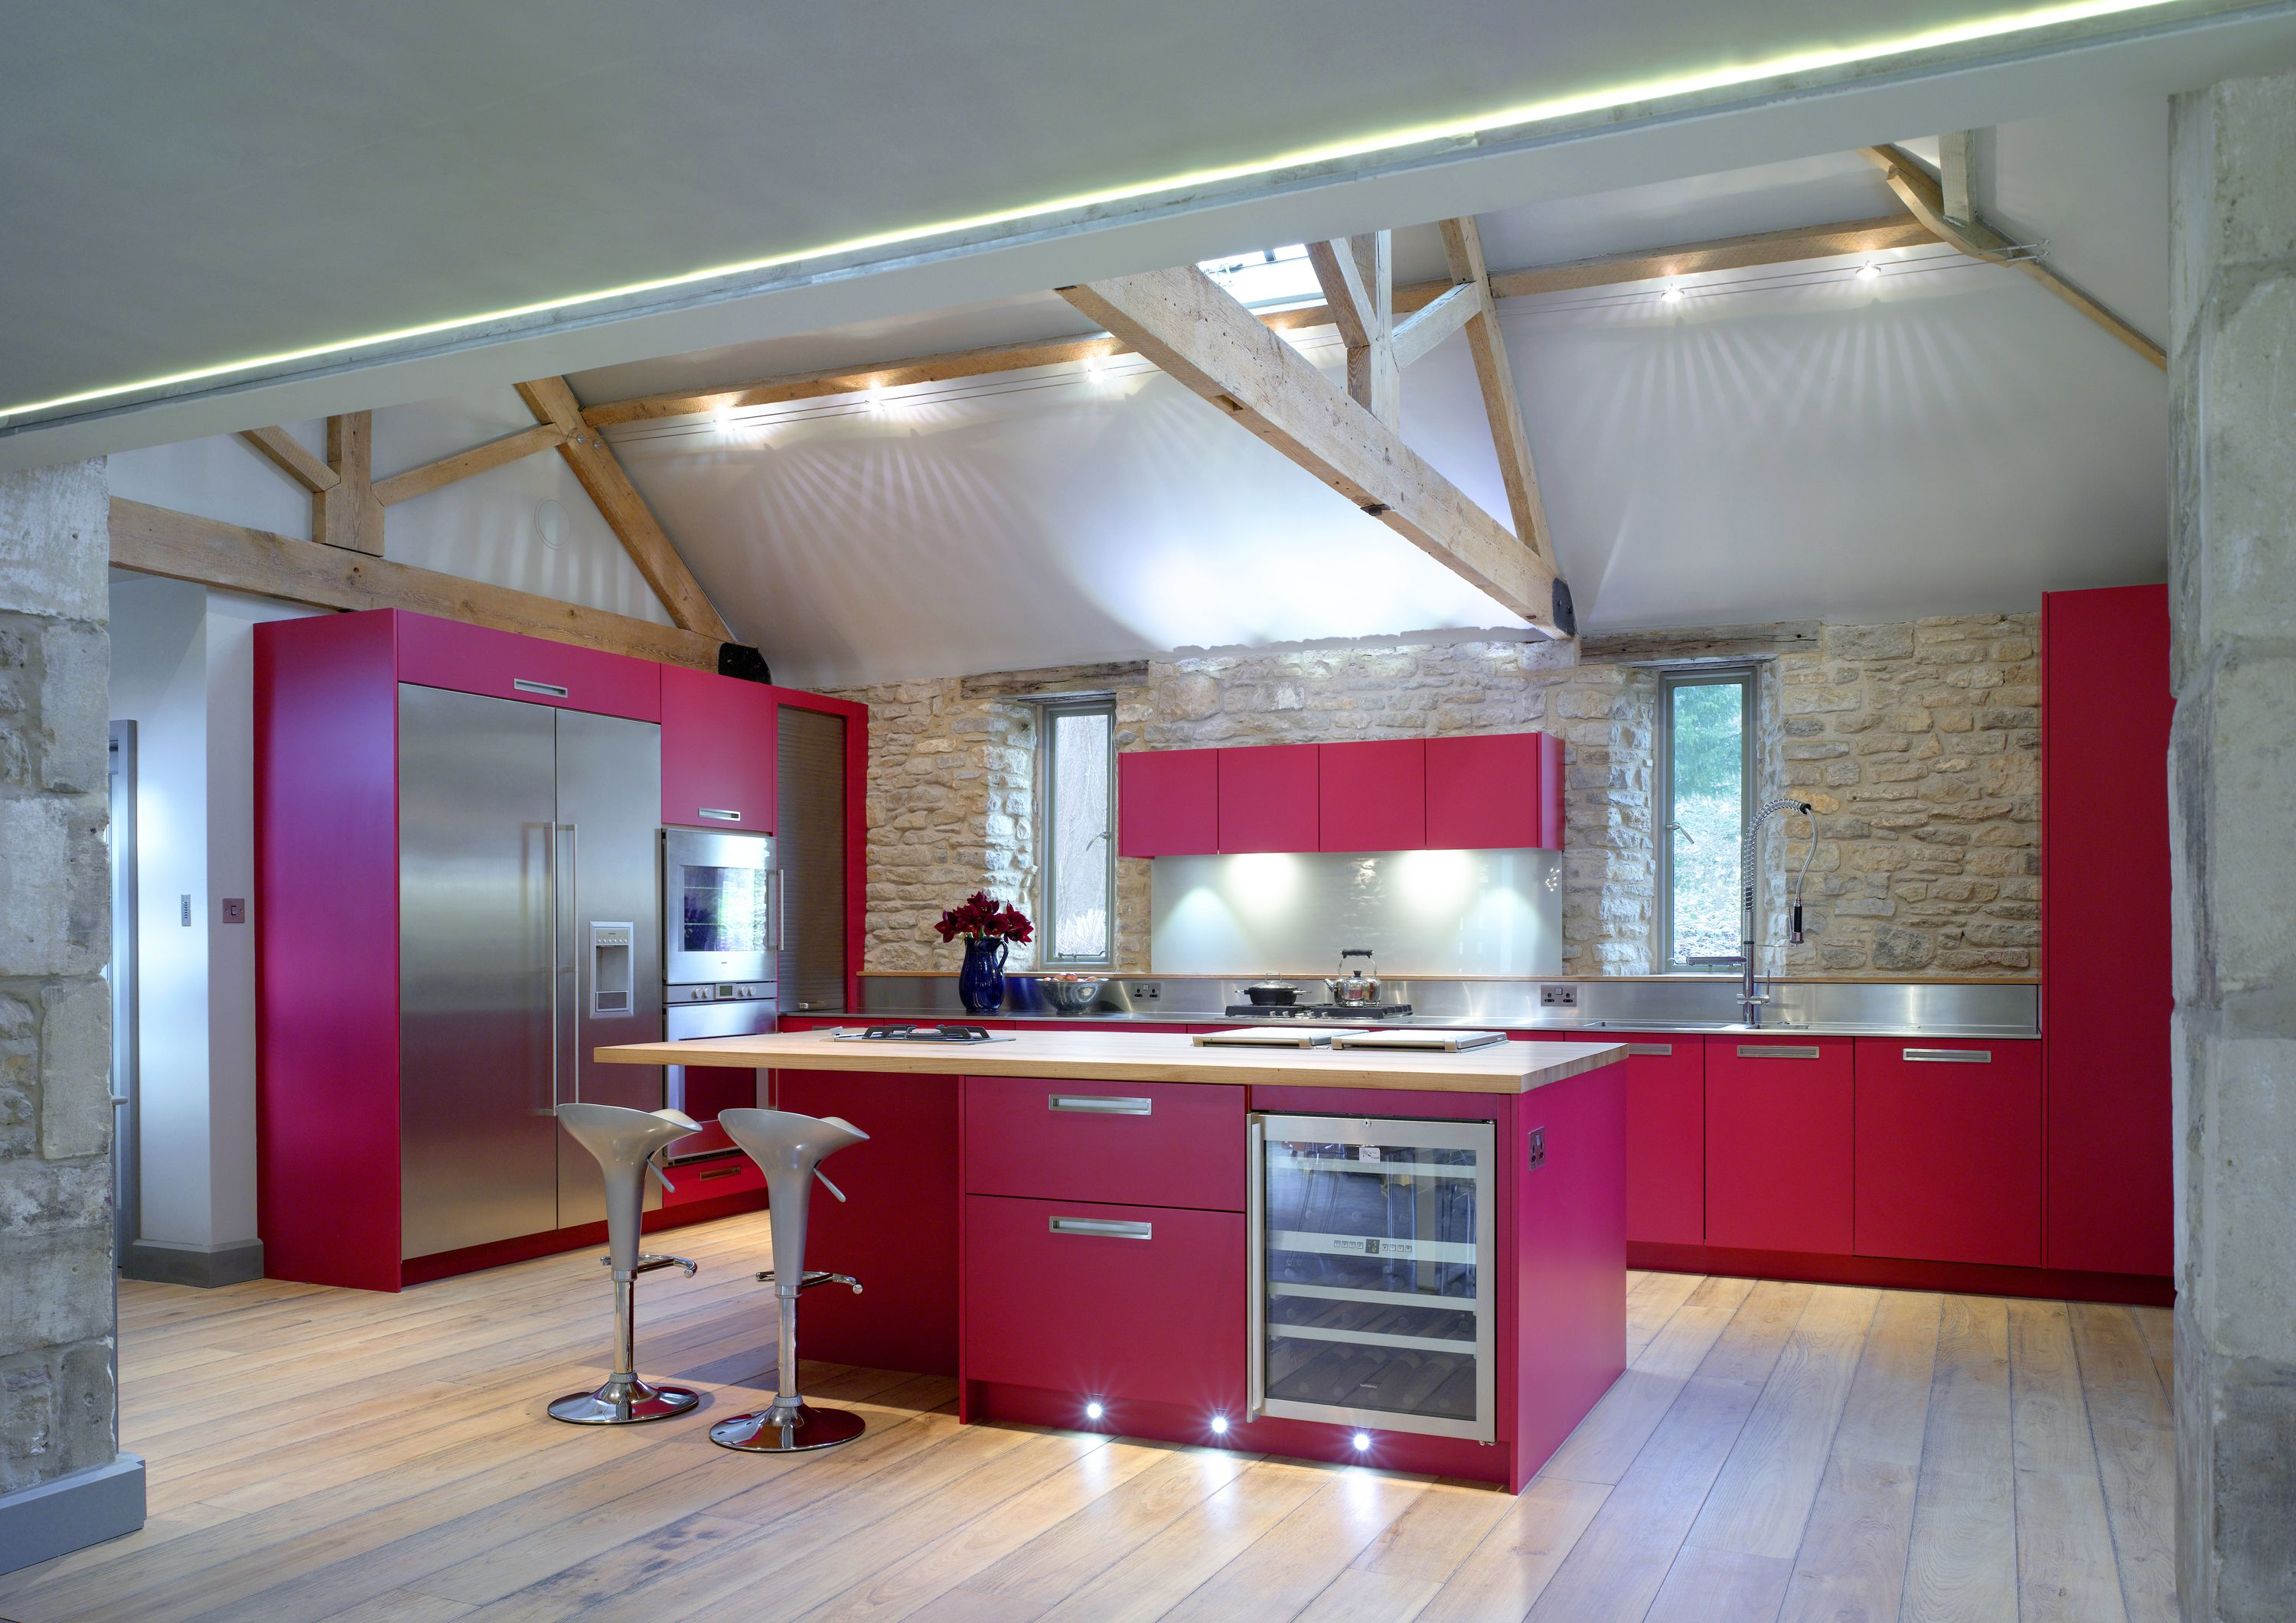 This Bold Roundhouse Kitchen In Deep Cerise Is Ideal For The Busy